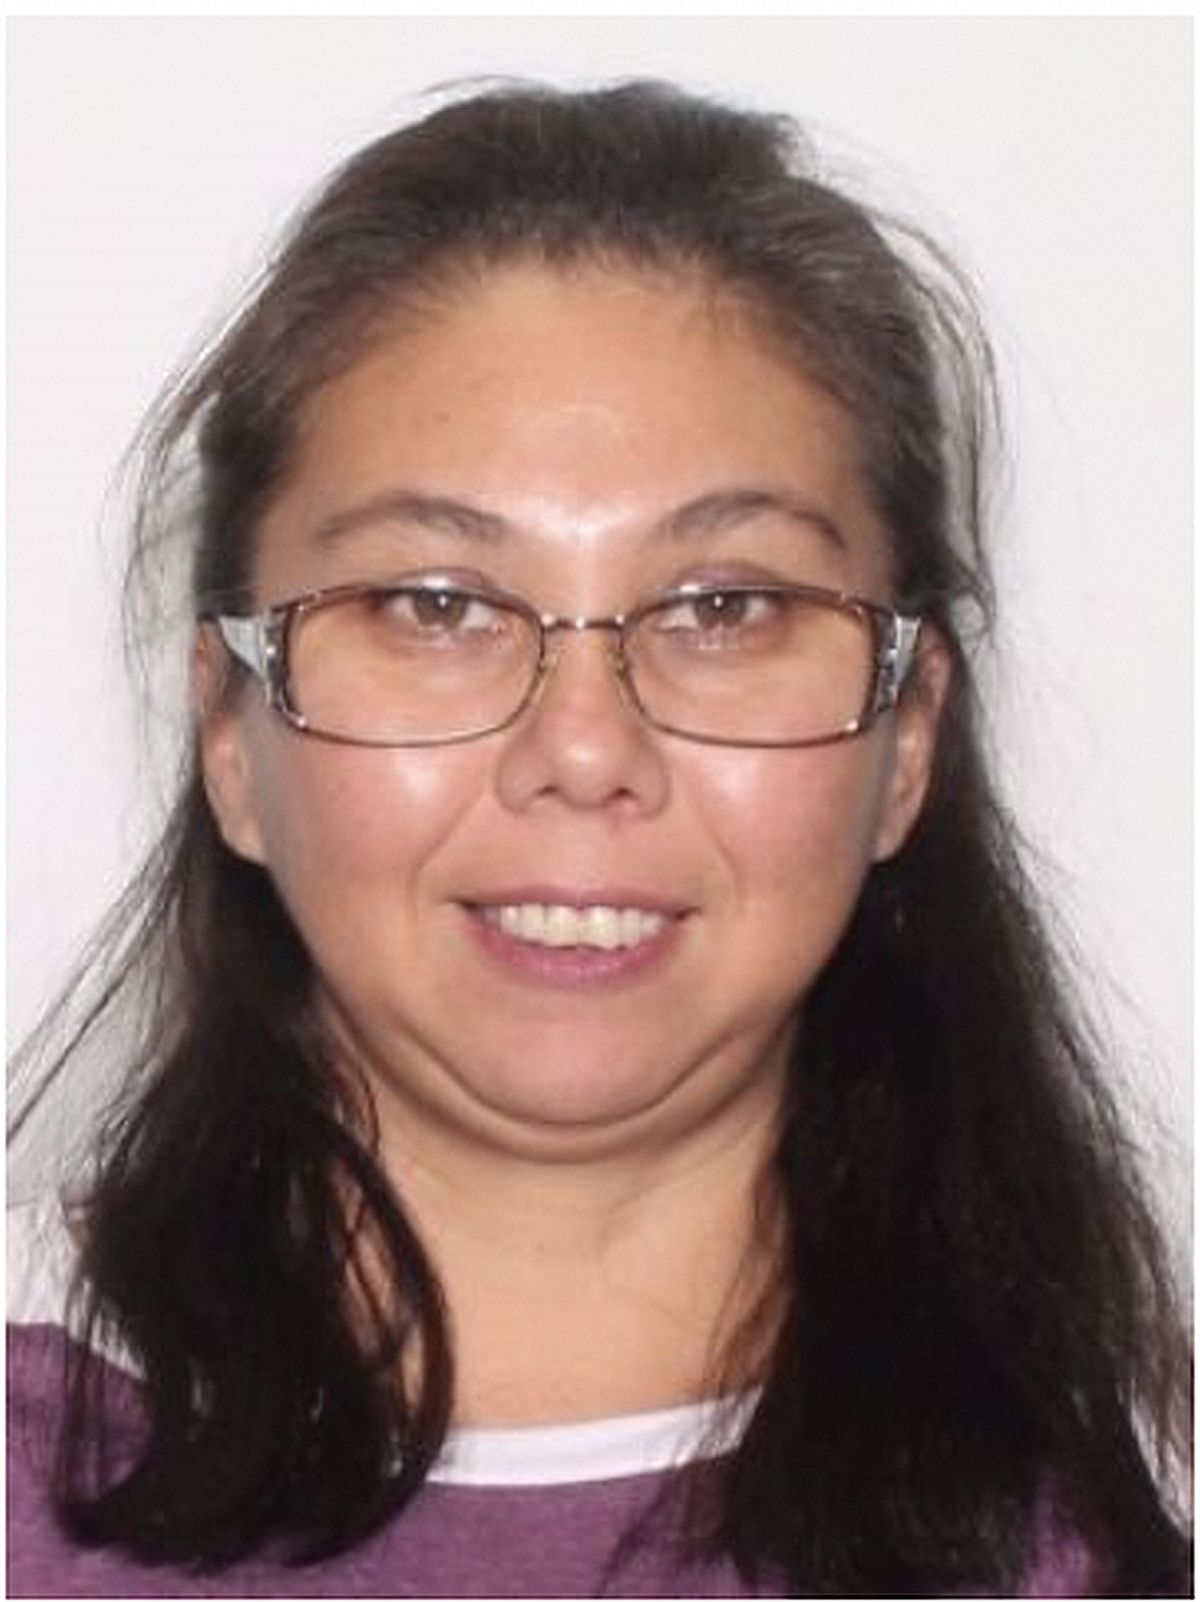 Cape Coral Police Seeking Information on Missing Woman